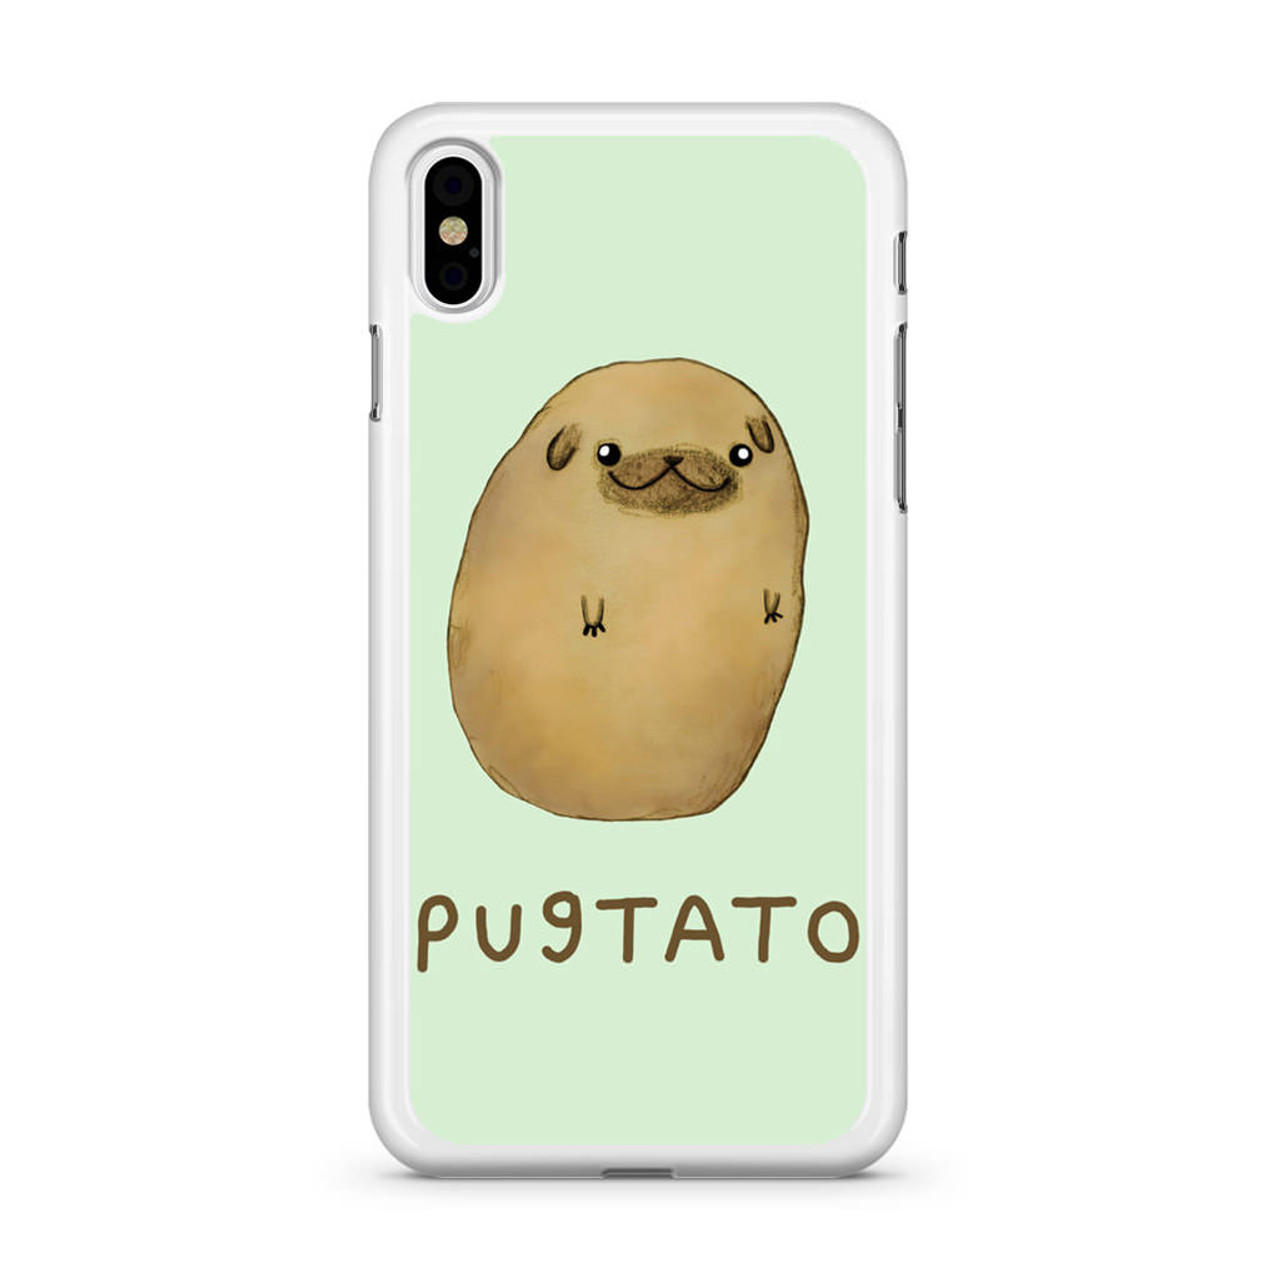 PUGTATO iphone case